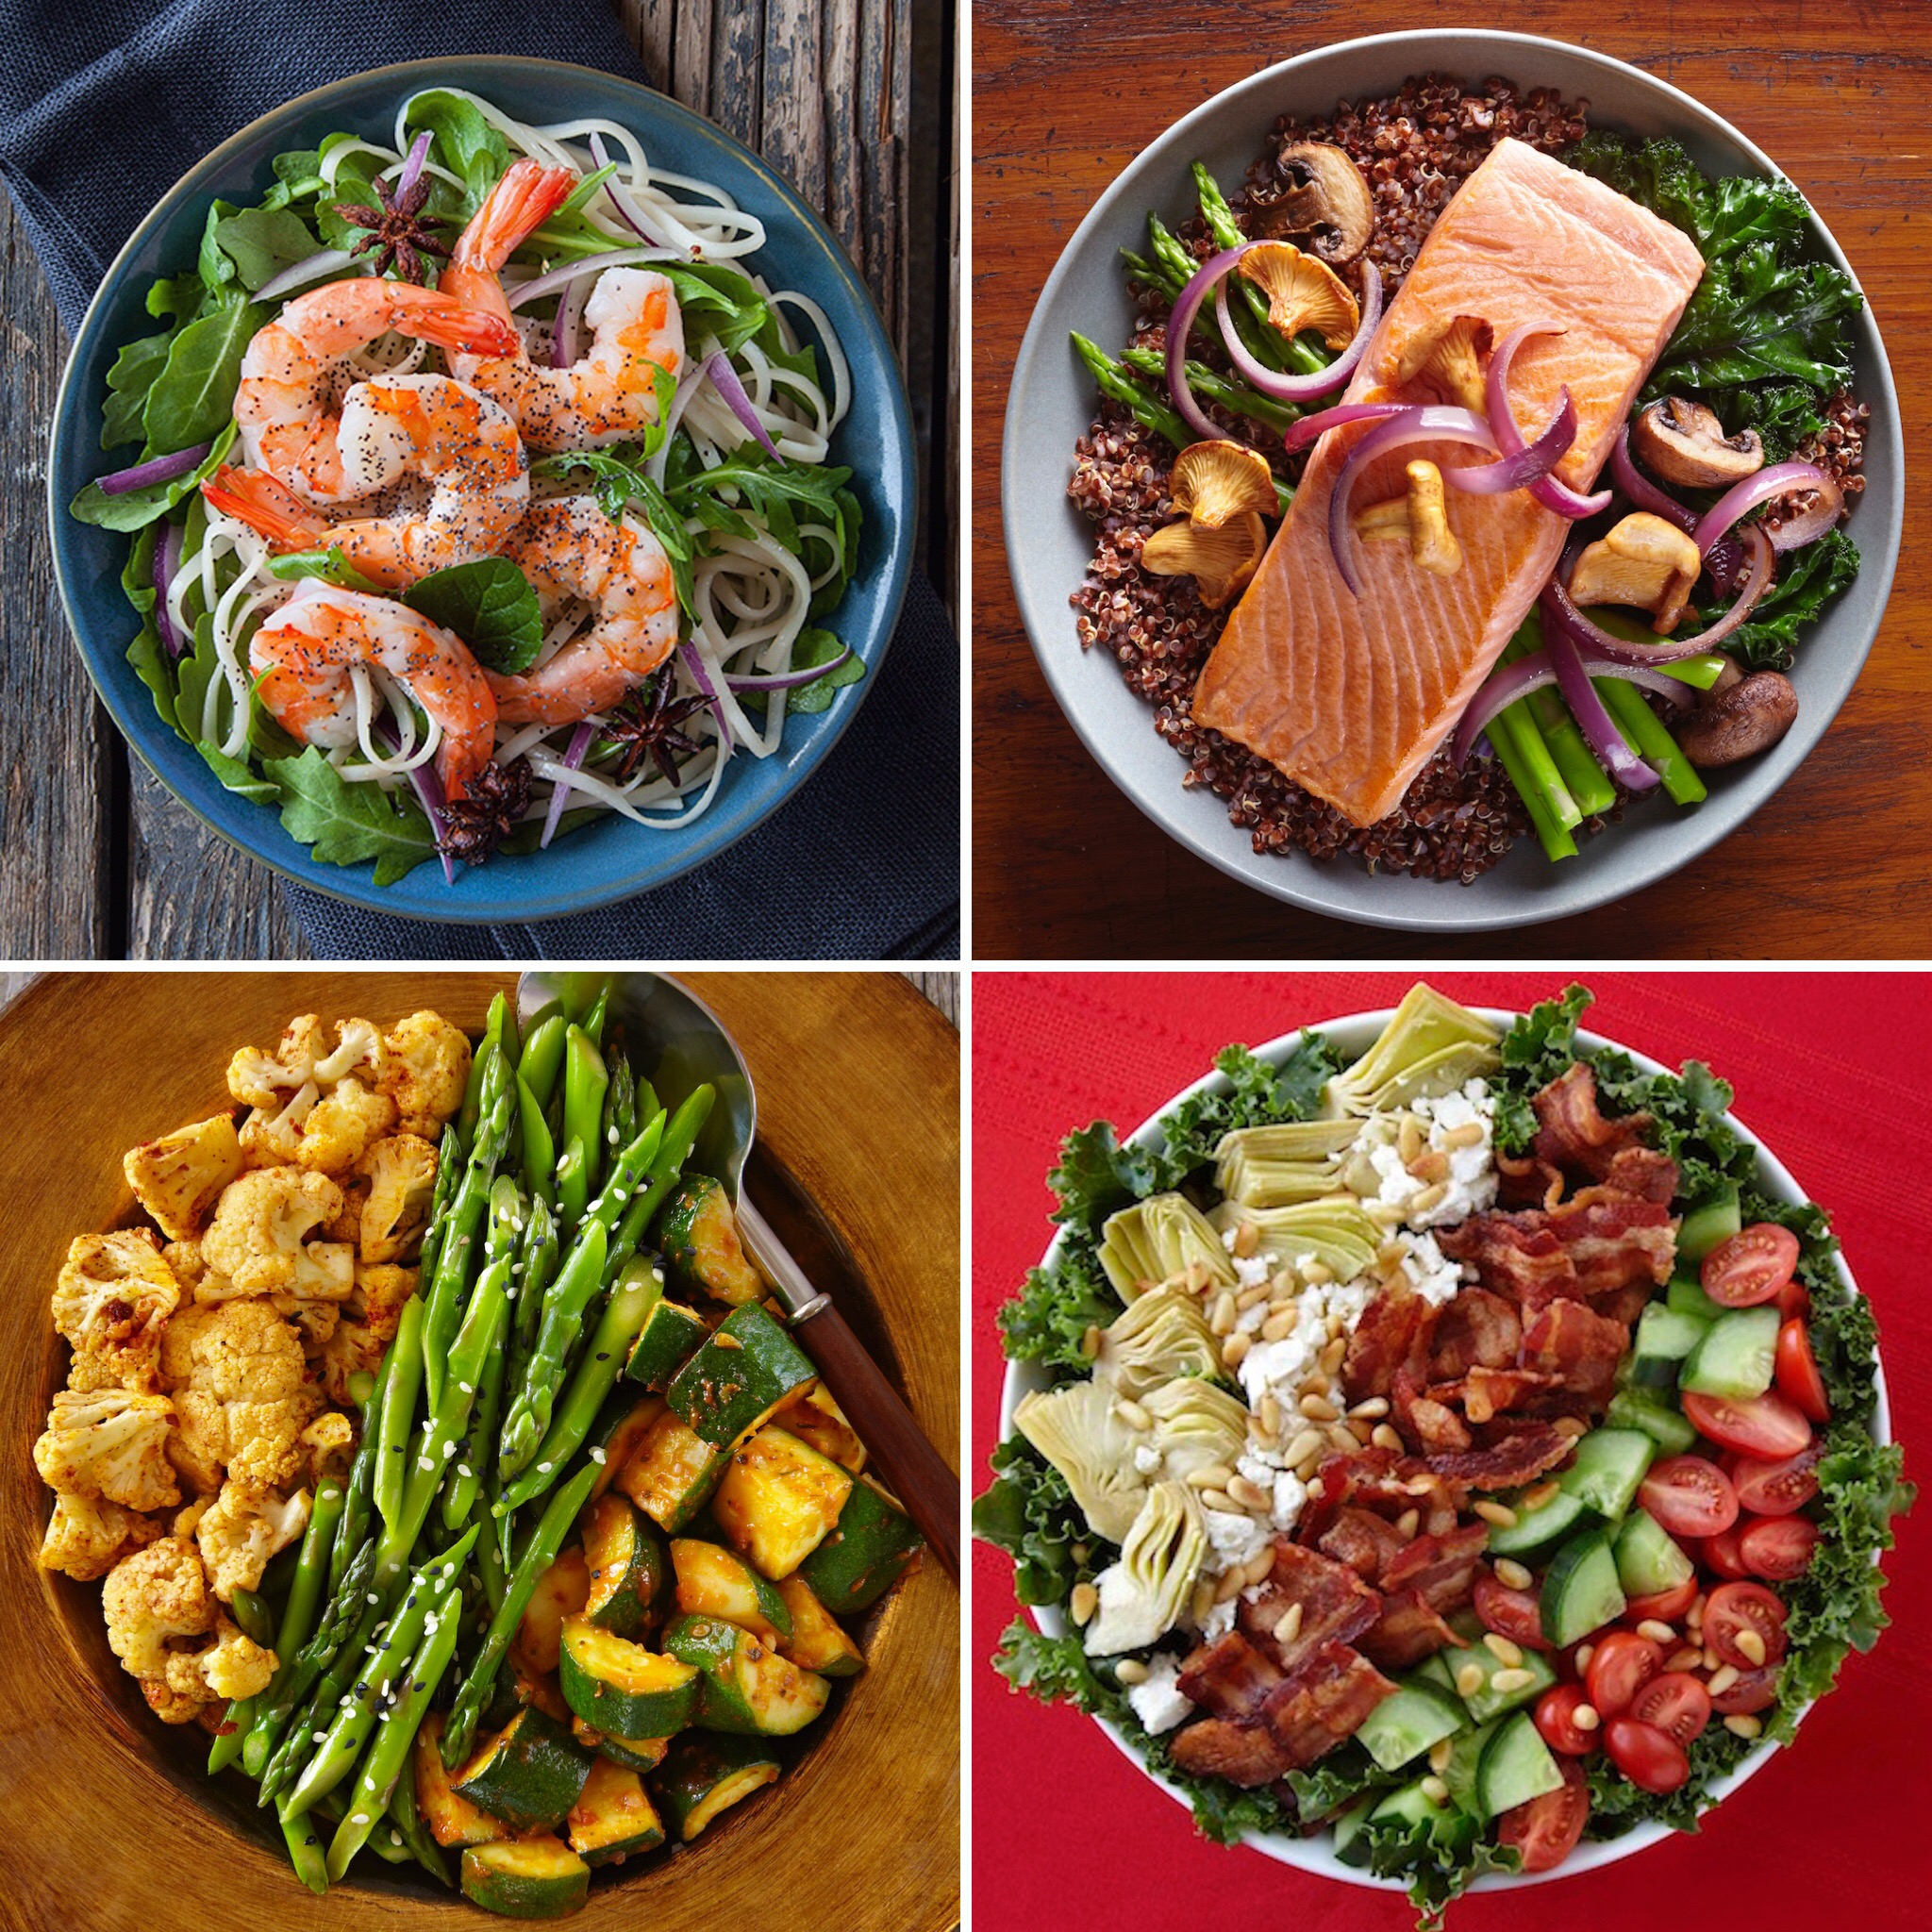 Food Styling for Photography